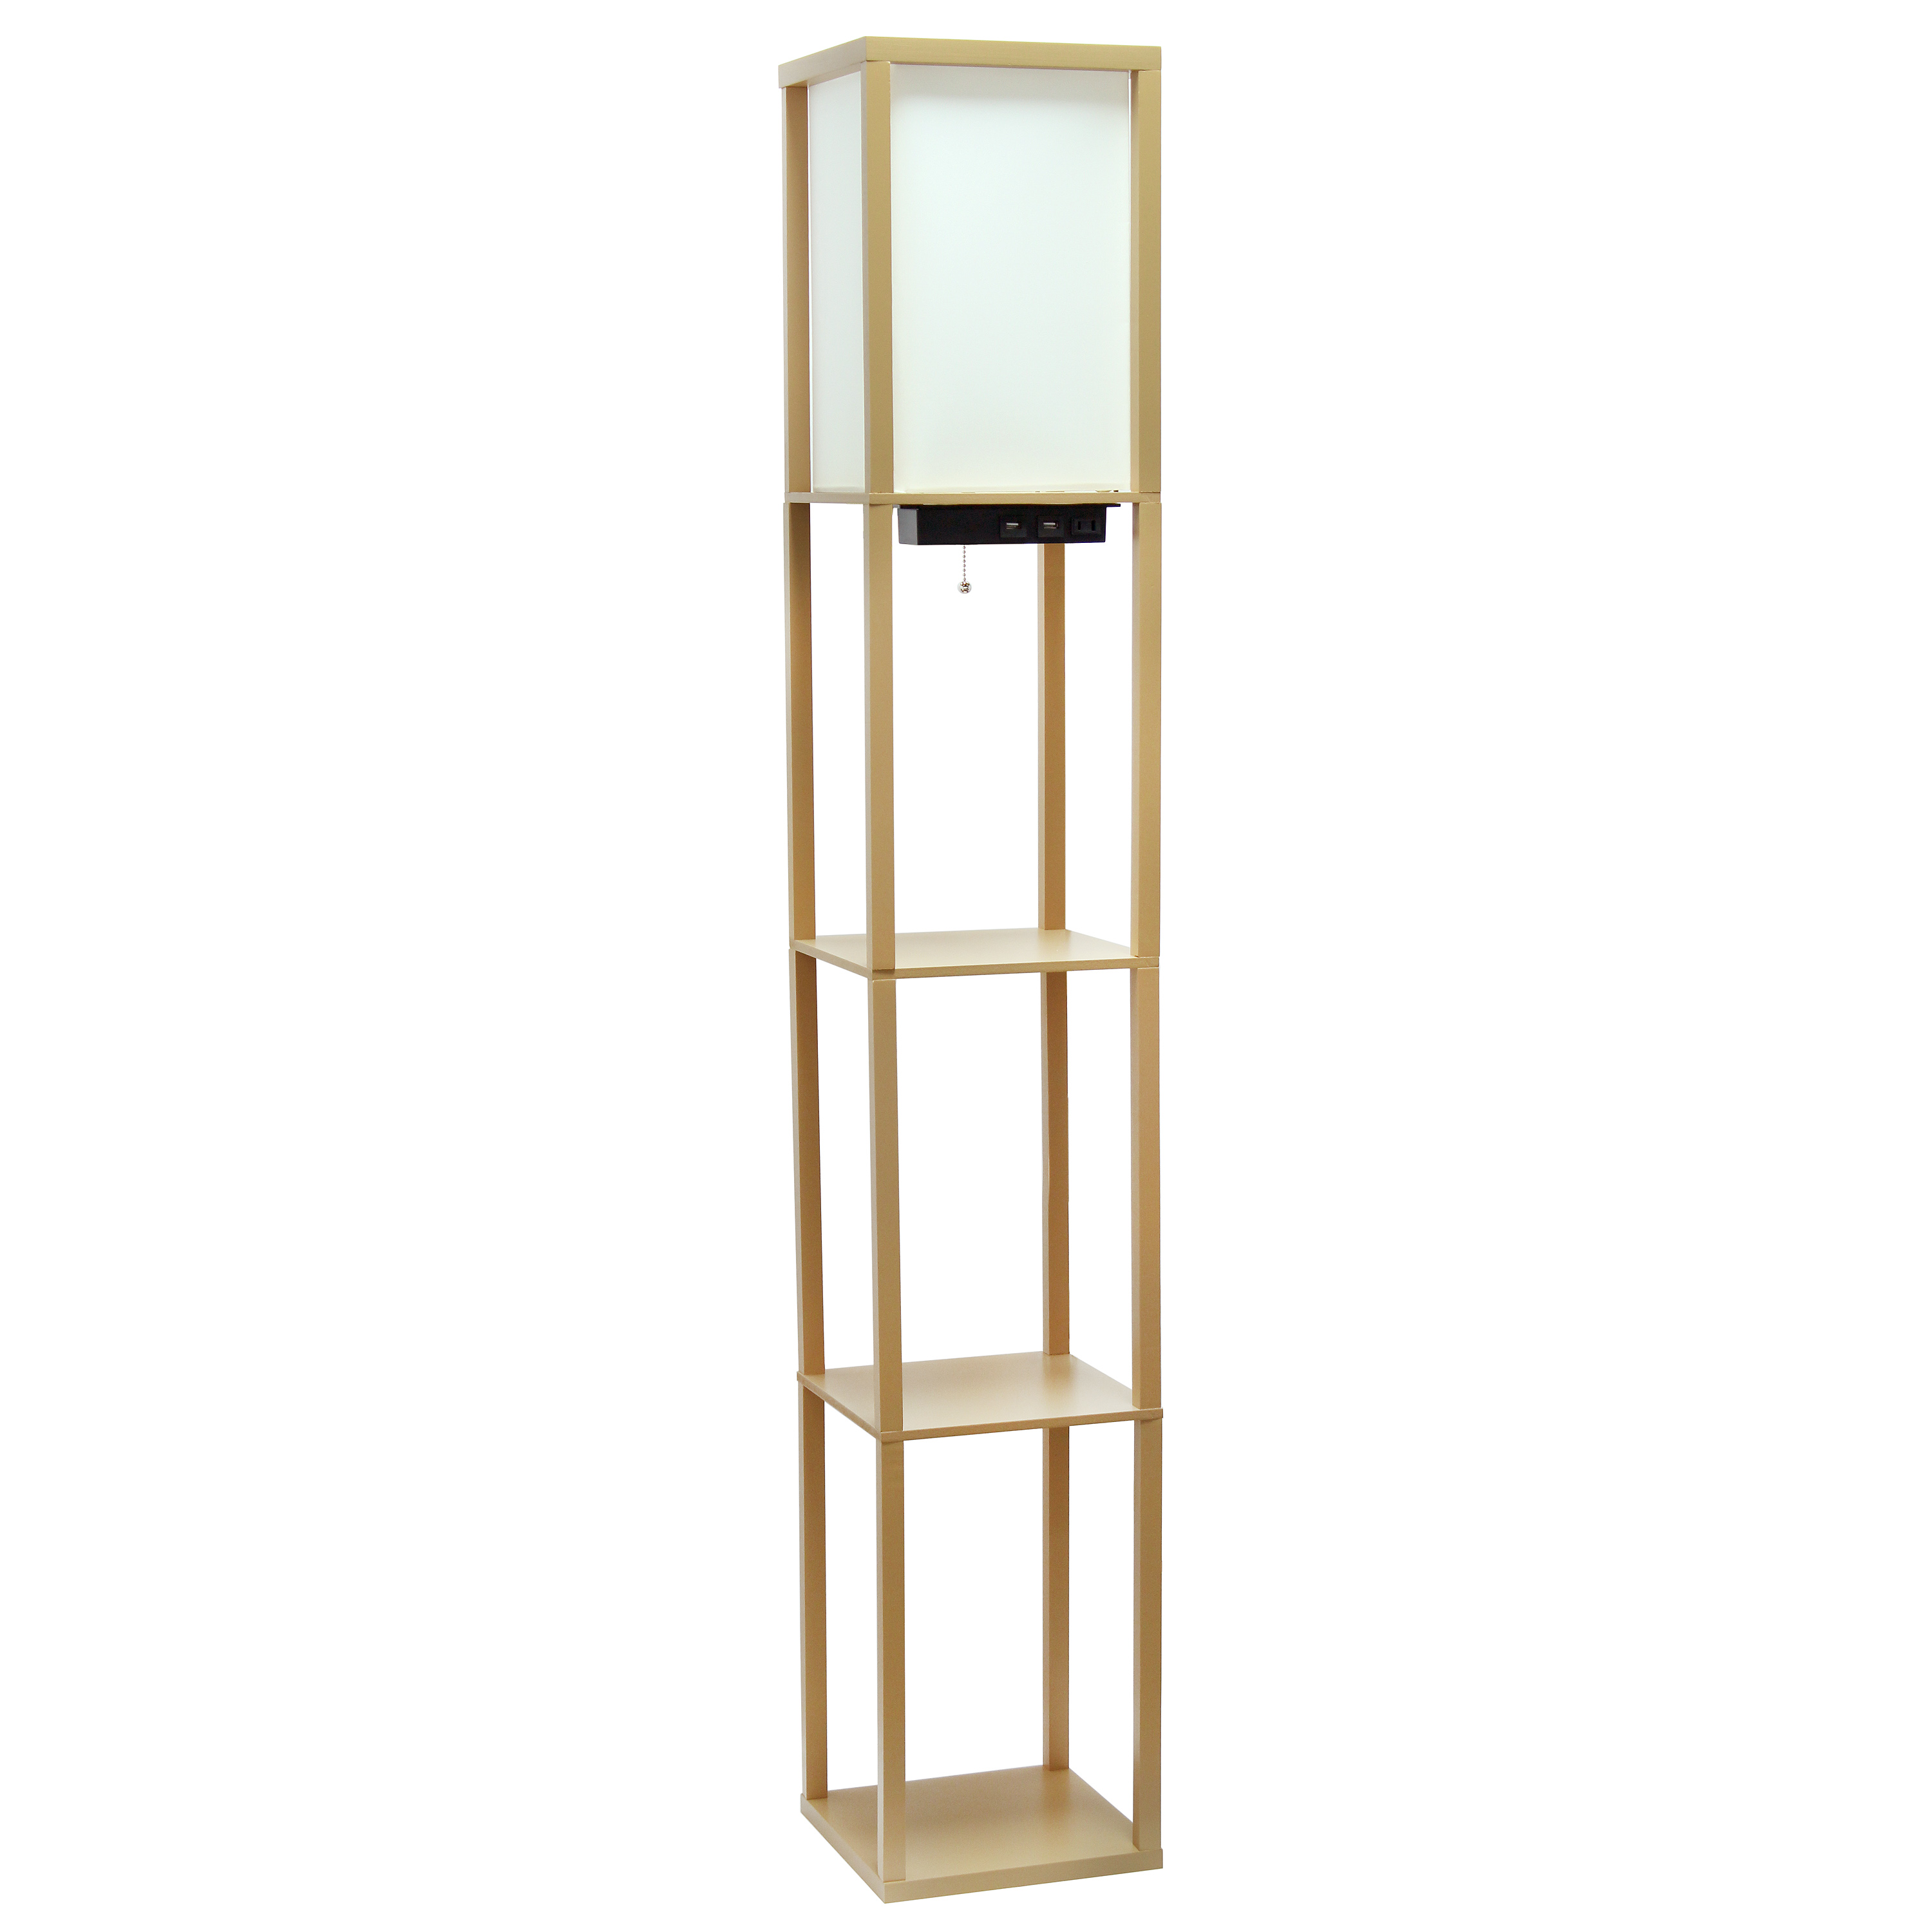 Simple Designs Floor Lamp Etagere Organizer Storage Shelf with 2 USB Charging Ports, 1 Charging Outlet and Linen Shade, Tan